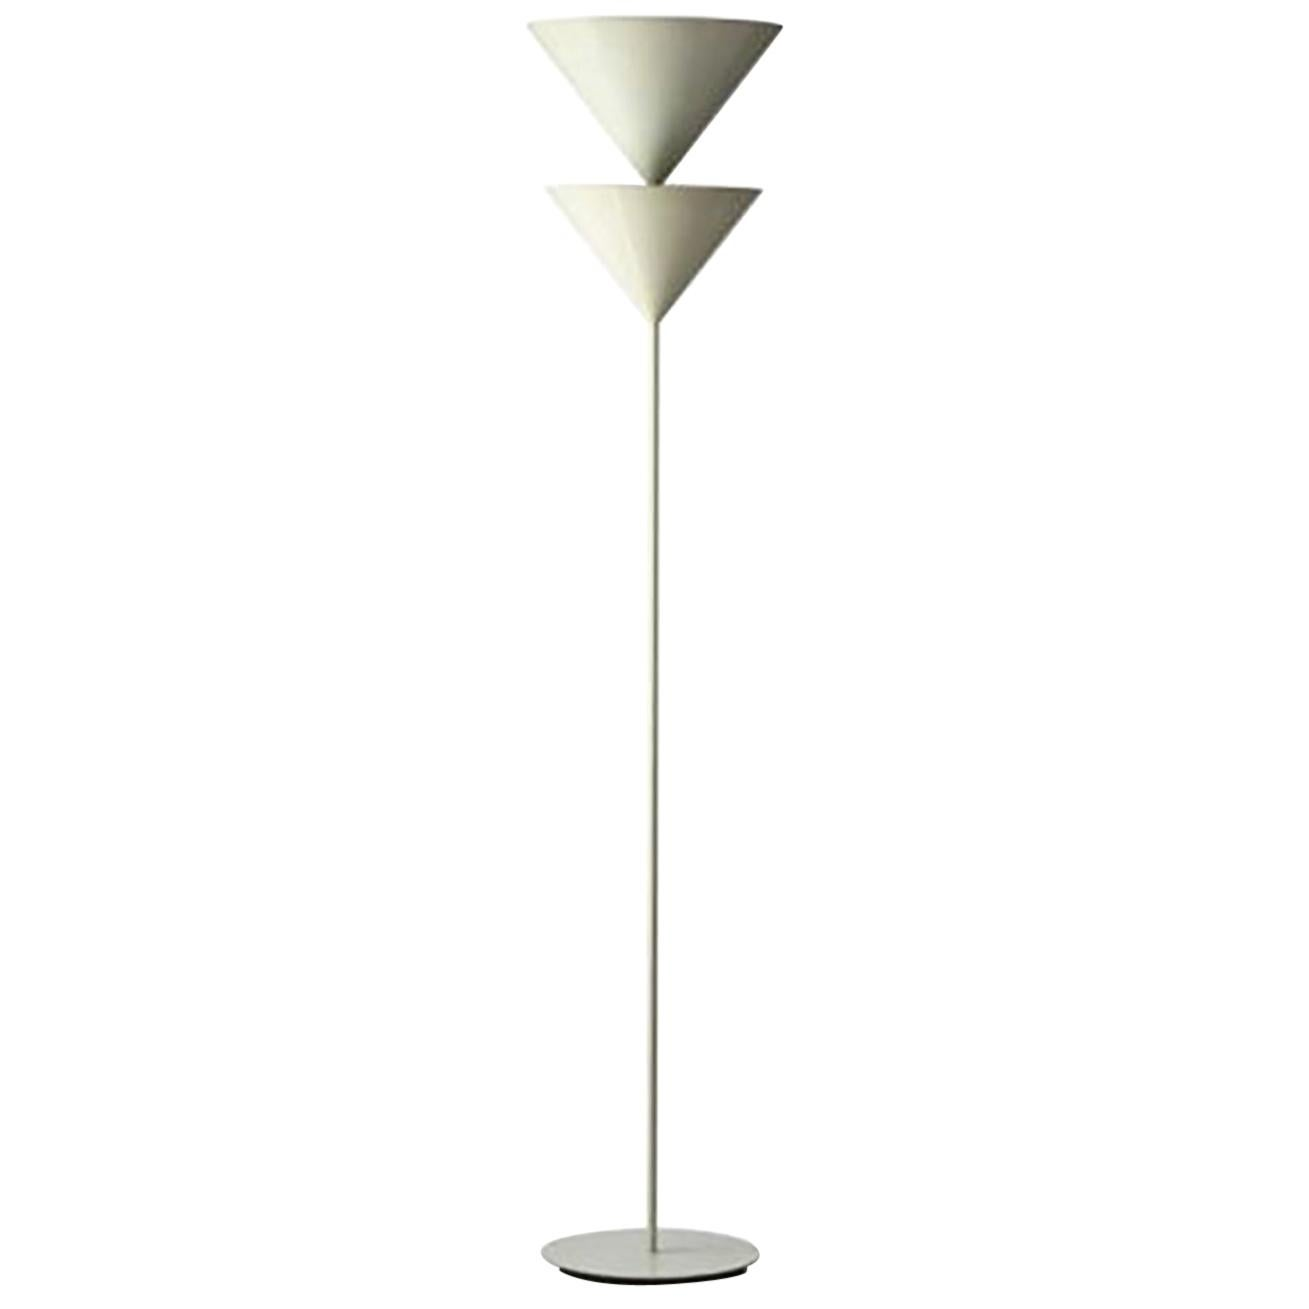 Pascal Floor Lamp by Vico Magistretti for Oluce